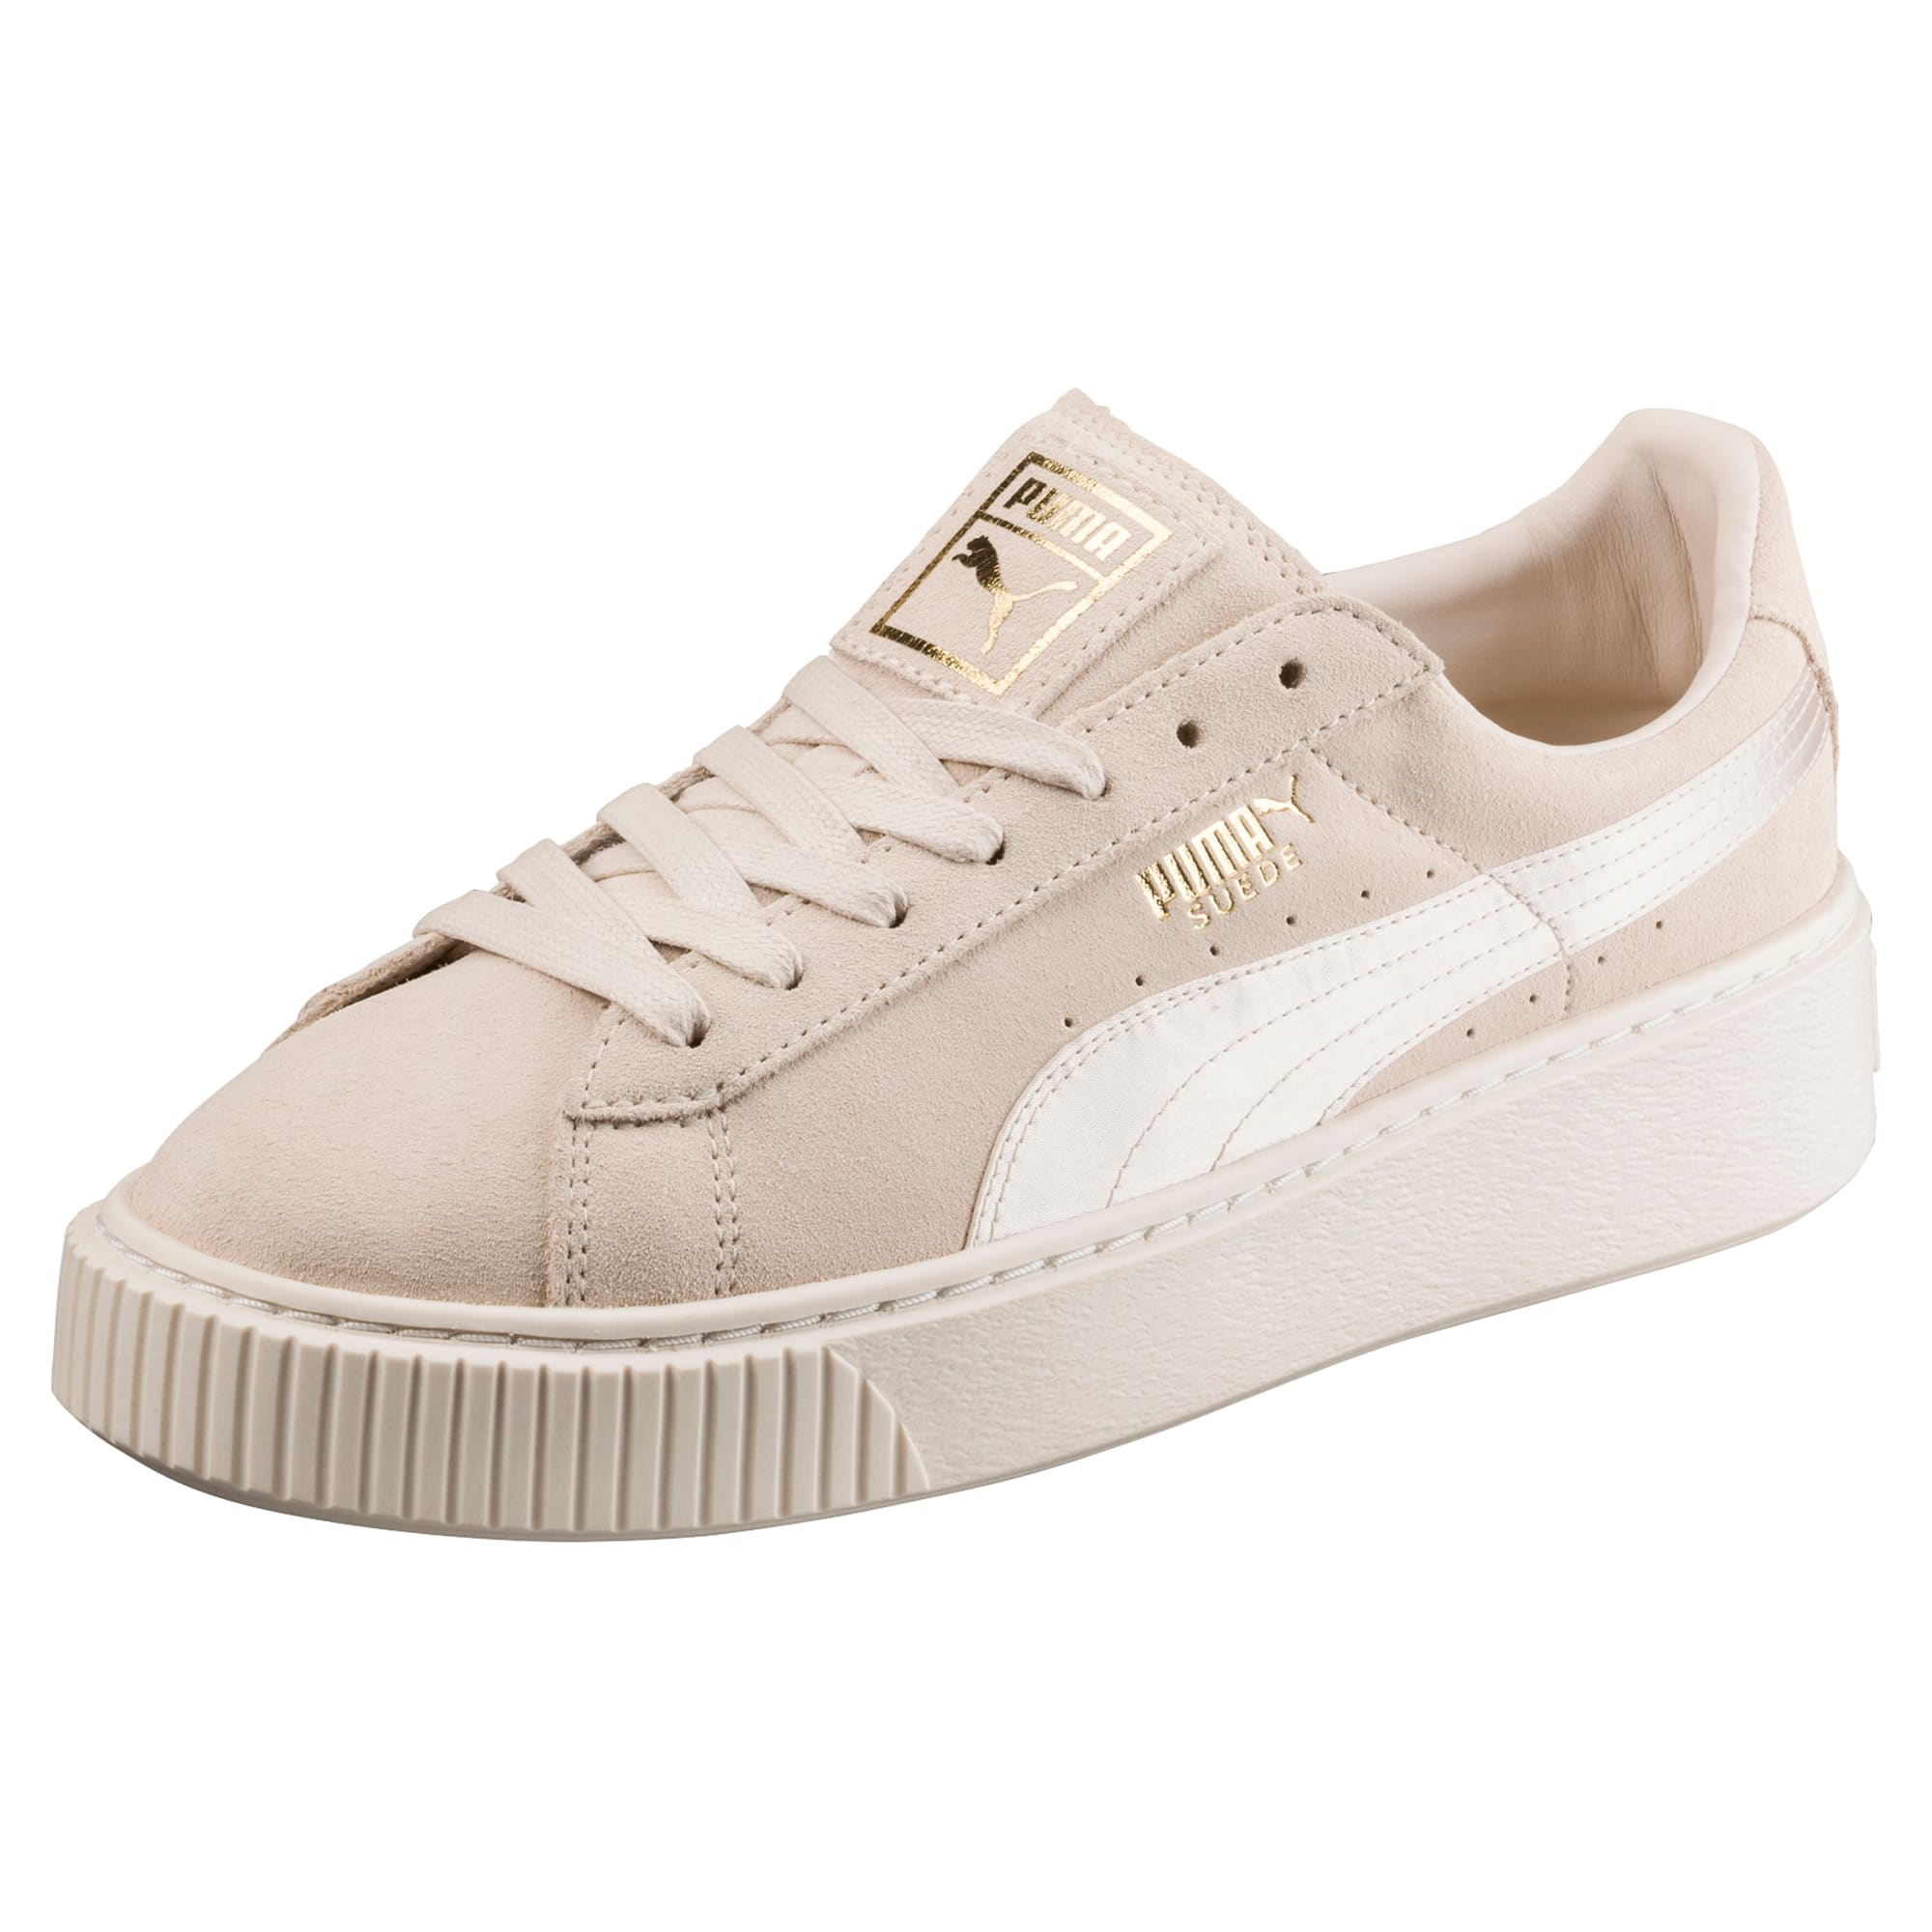 Suede Summer Satin Platform Sneakers